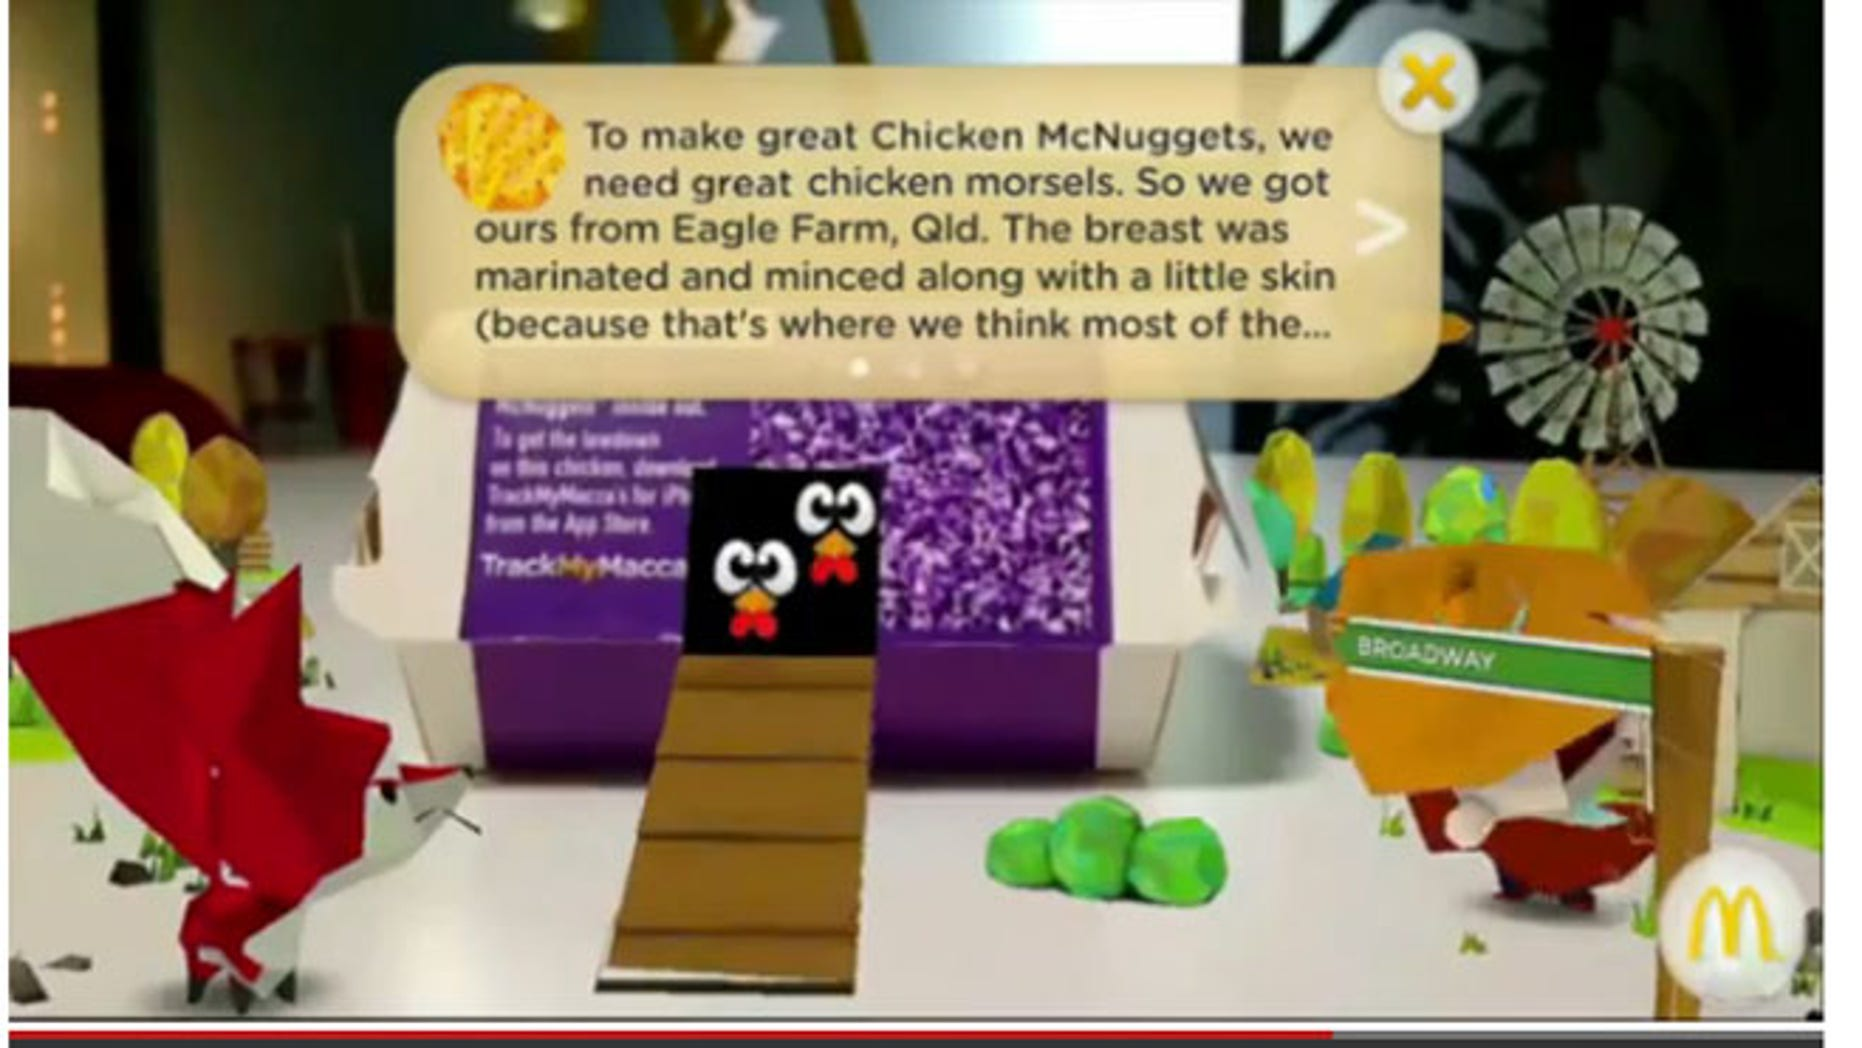 McDonald's has launched an app that allows customers to track exactly where their food has come from.